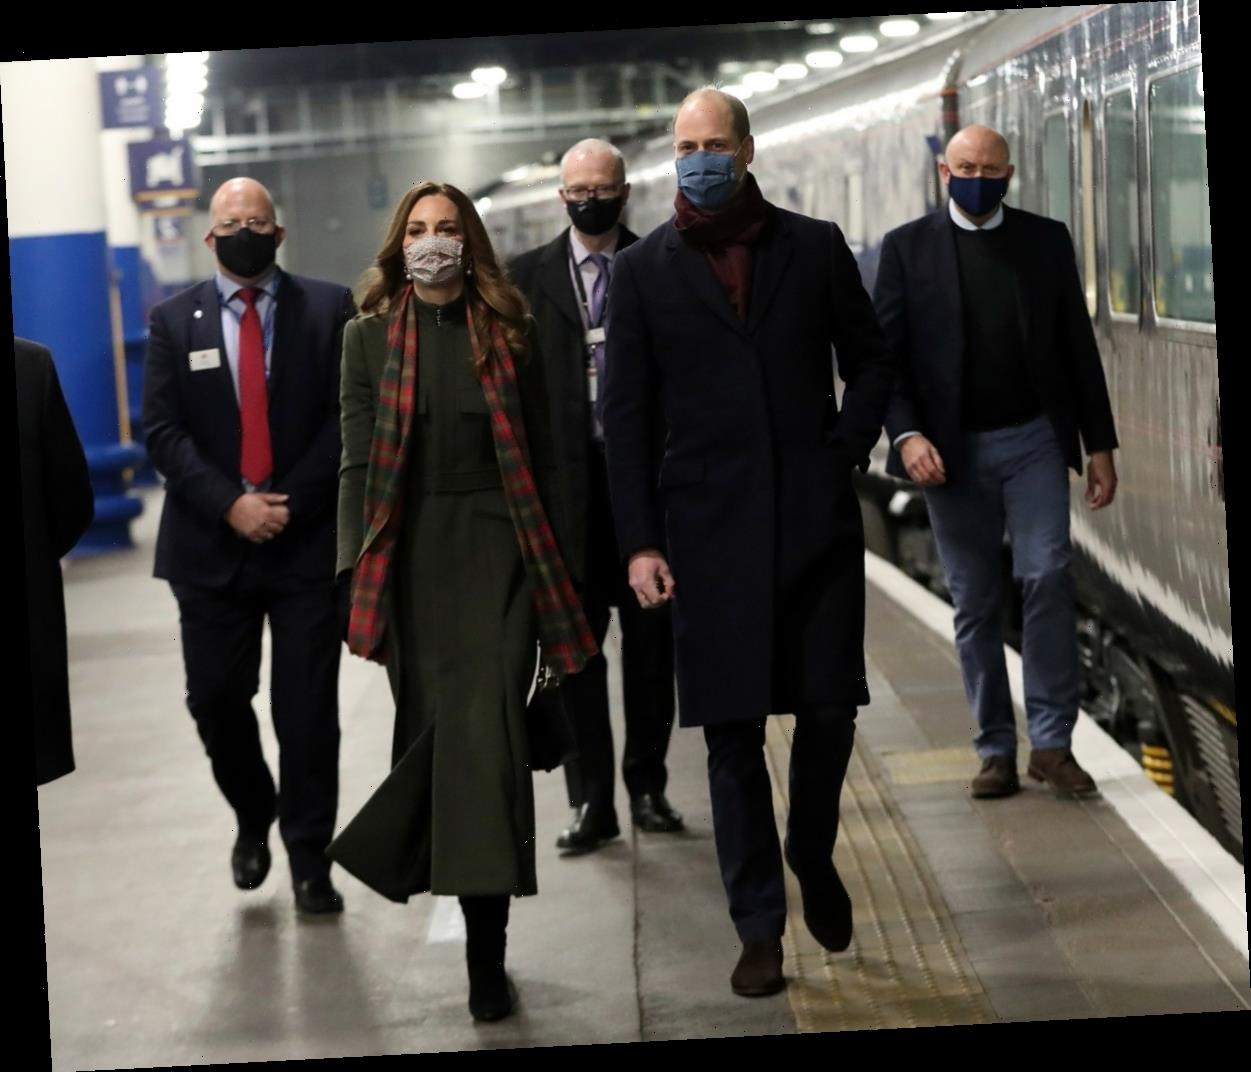 The Duke & Duchess of Cambridge's tour began with a train station concert